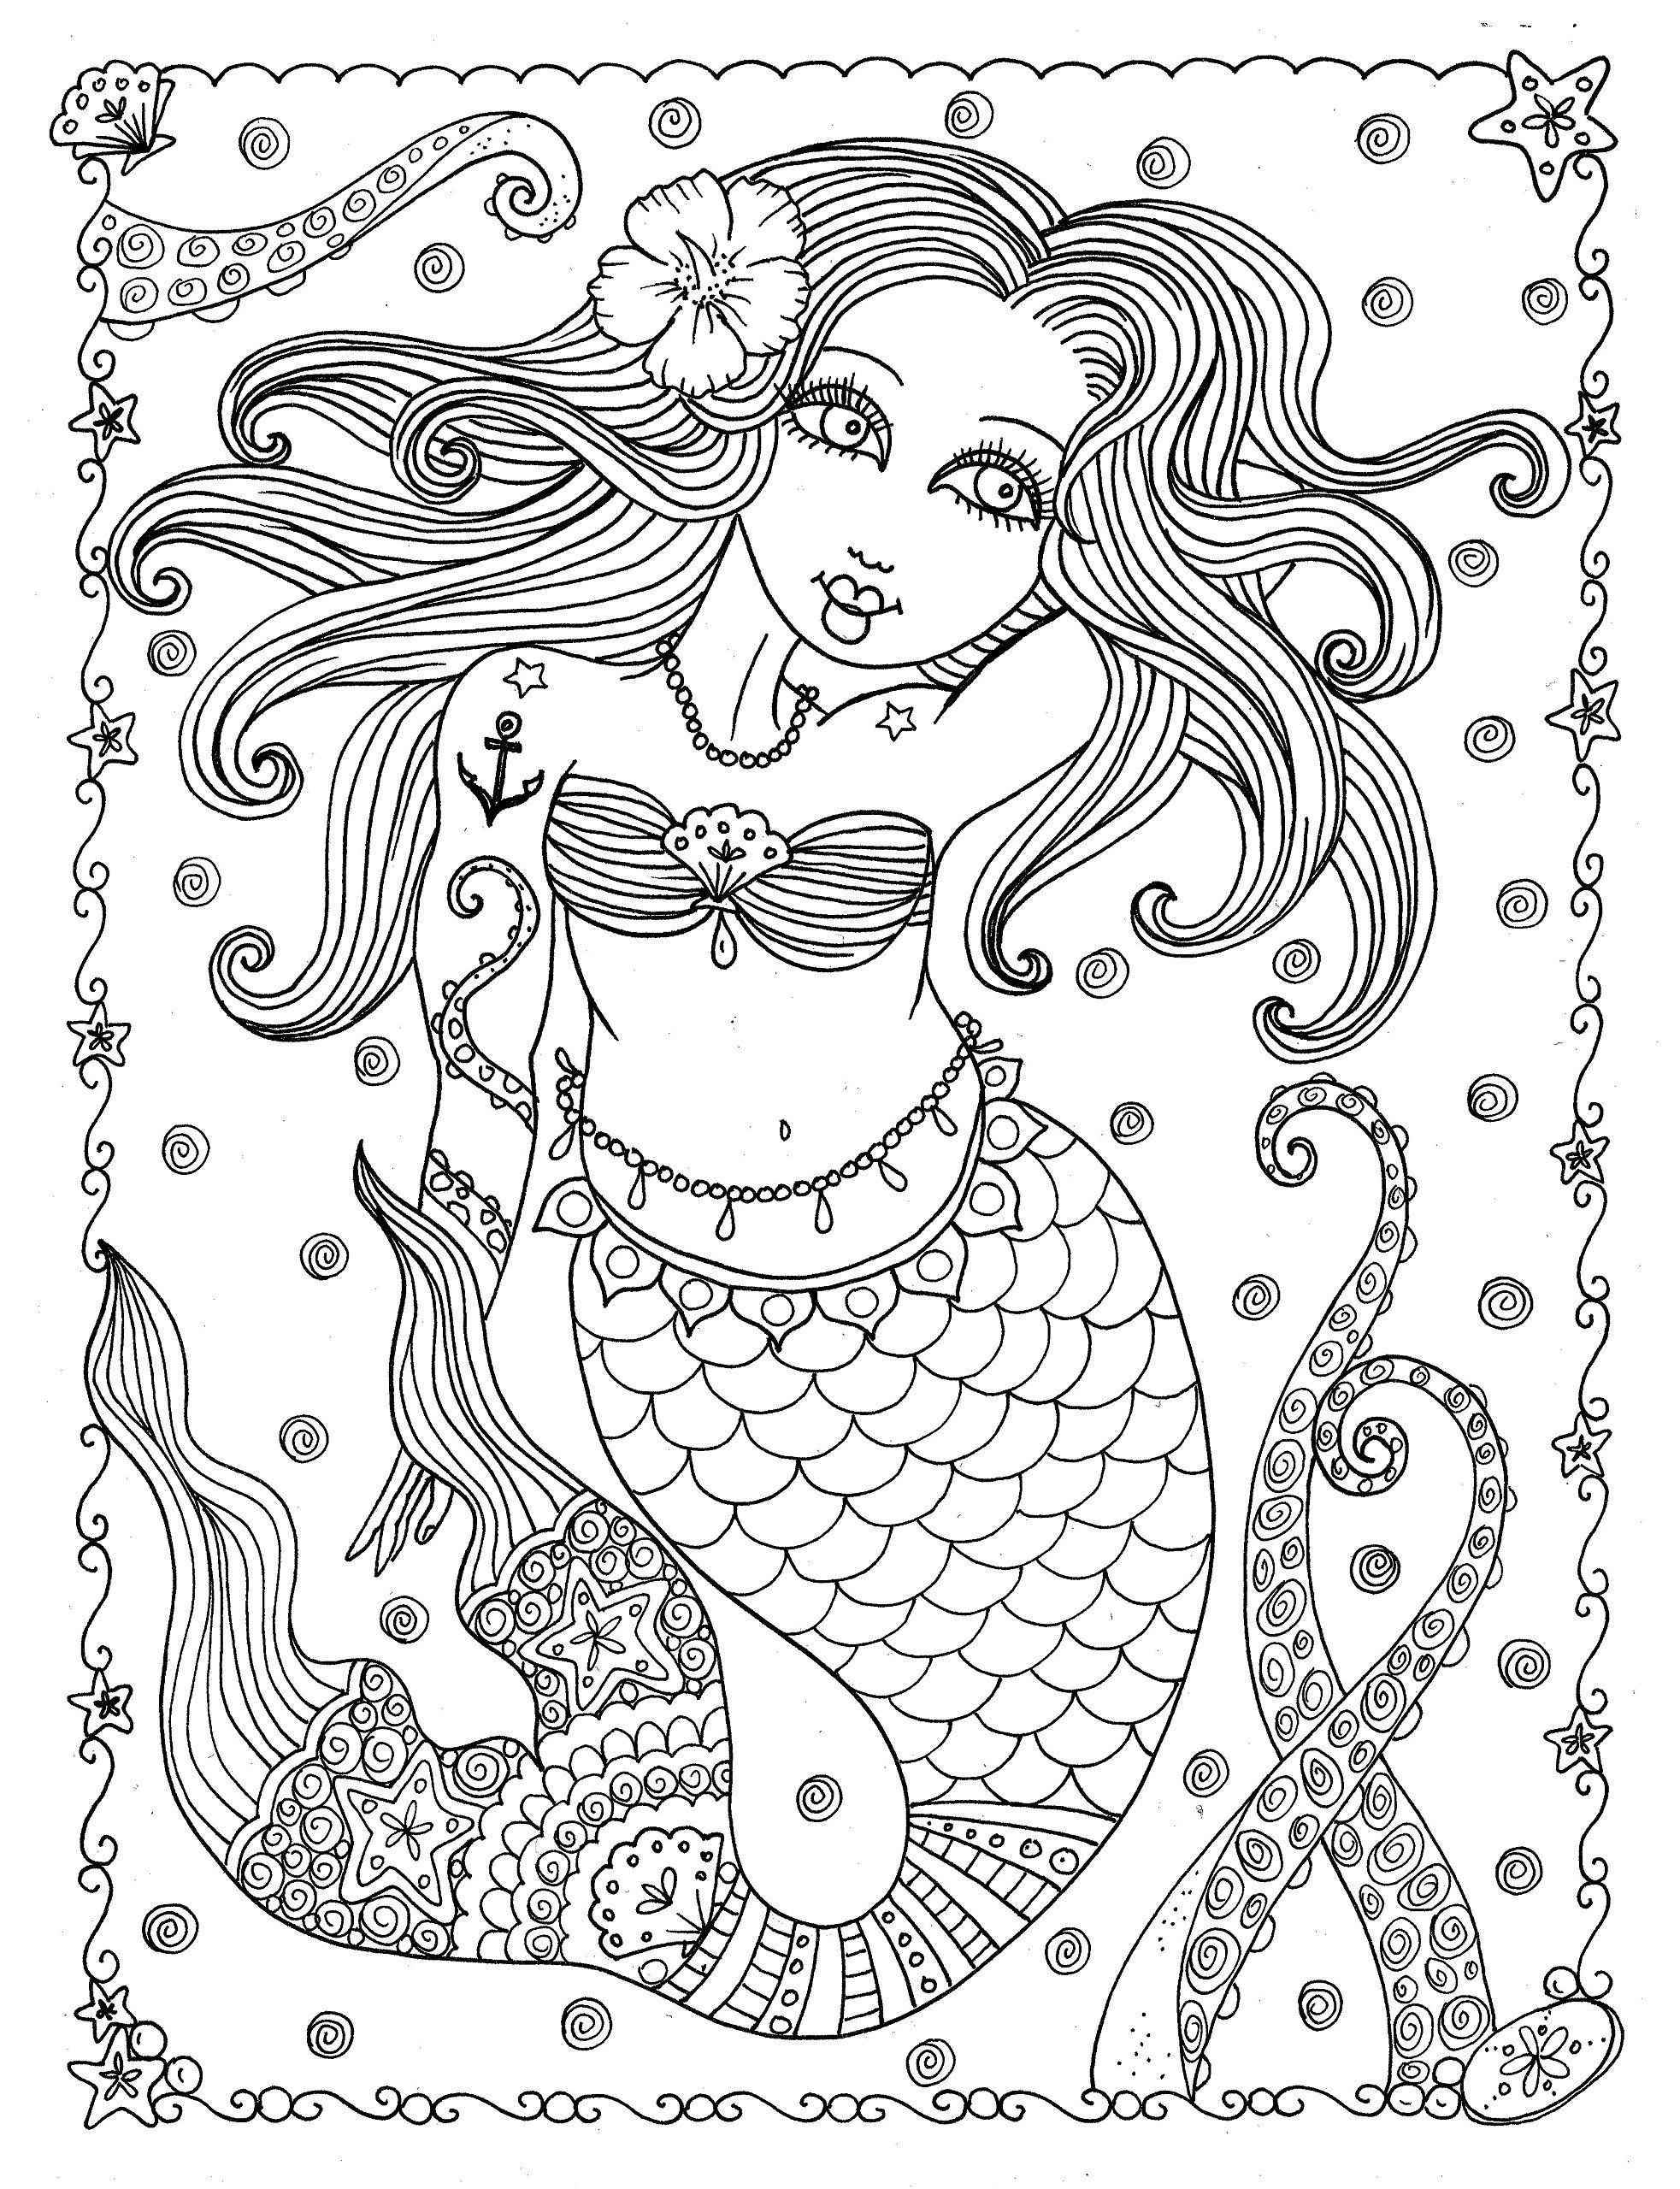 The Chubby Mermaid Coloring Book For Mermaid Lovers Not Your Mama S